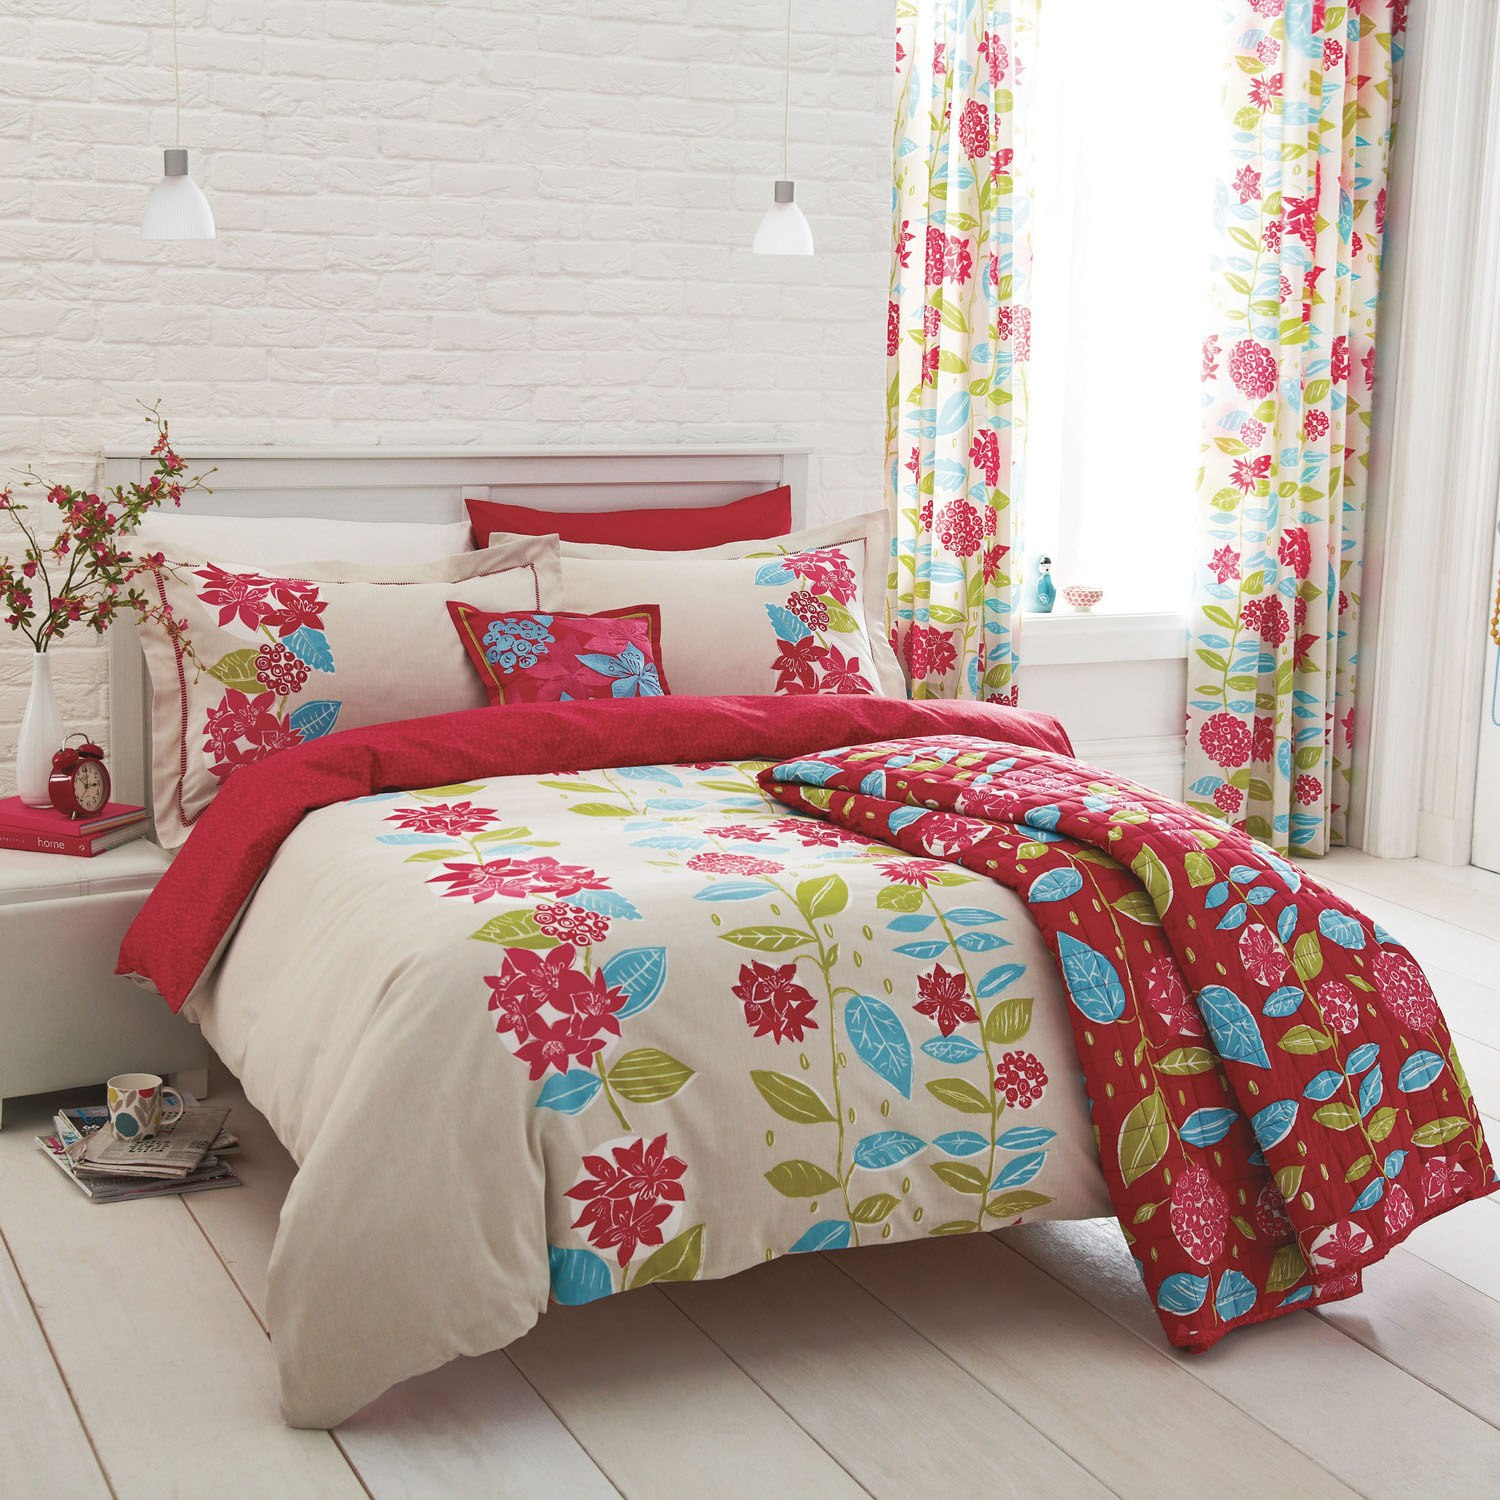 Choose from our large selection of bed linen, bed sets, sheets, pillowcases and Categories: Bedlinen, Comforters, Pillows, Bedspreads, Blankets & throws and more.